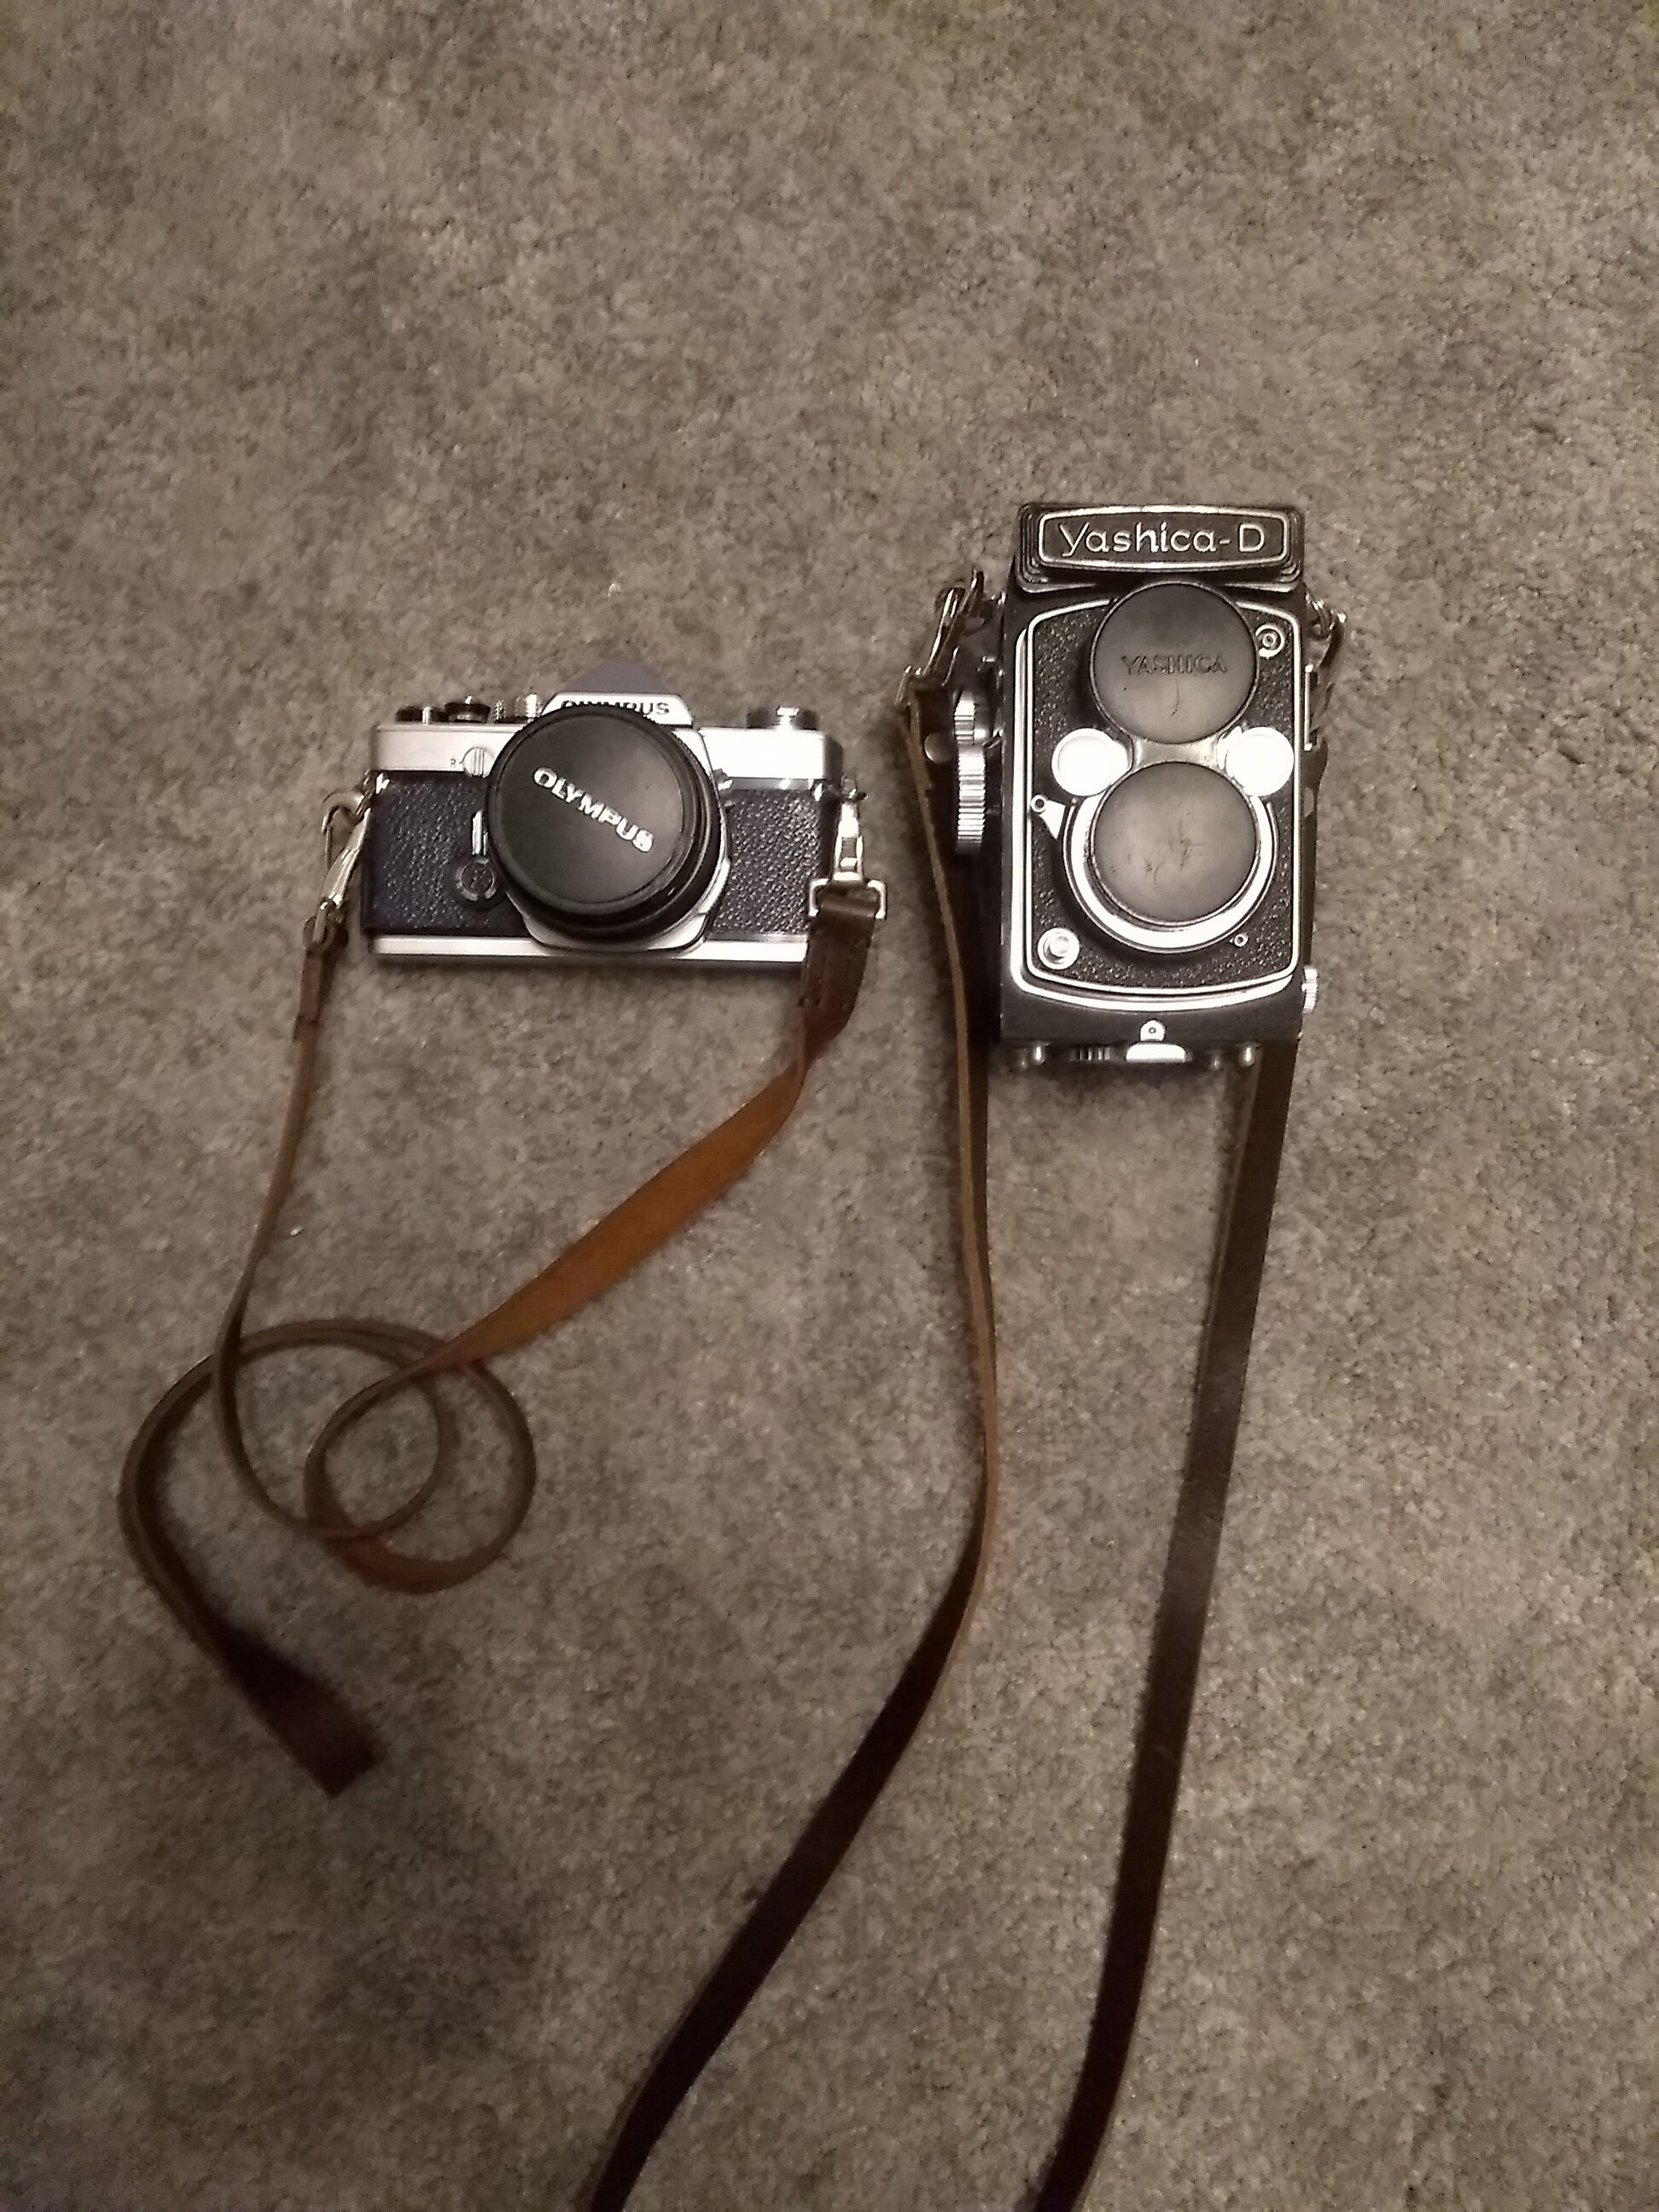 My Olympus OM-1 & Yashica D, my standard travel set up whenever I go away for a trip.